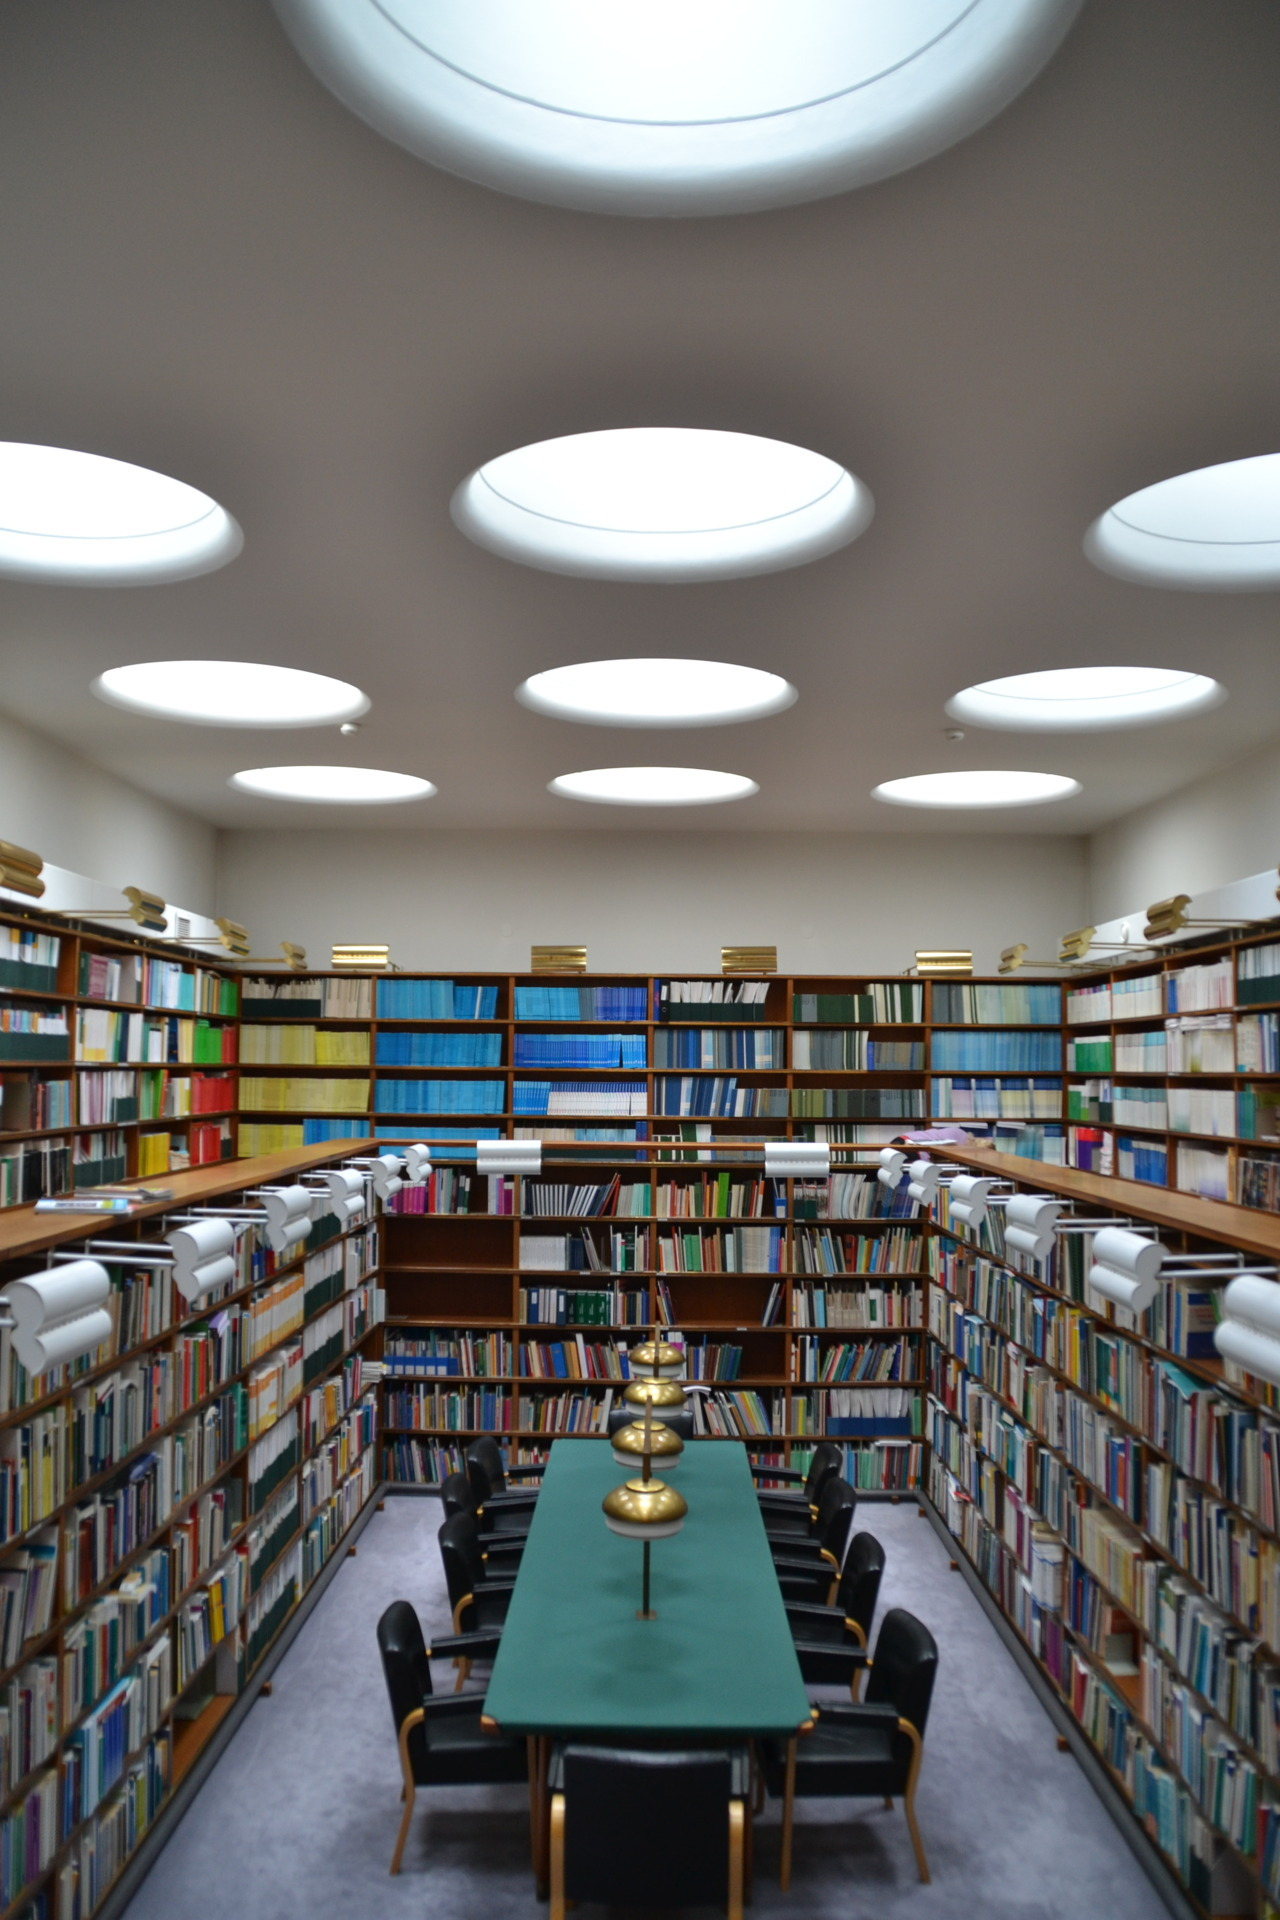 The Library. National Pensions Institute by Alvar Aalto Helsinki, Finland Summer 2011